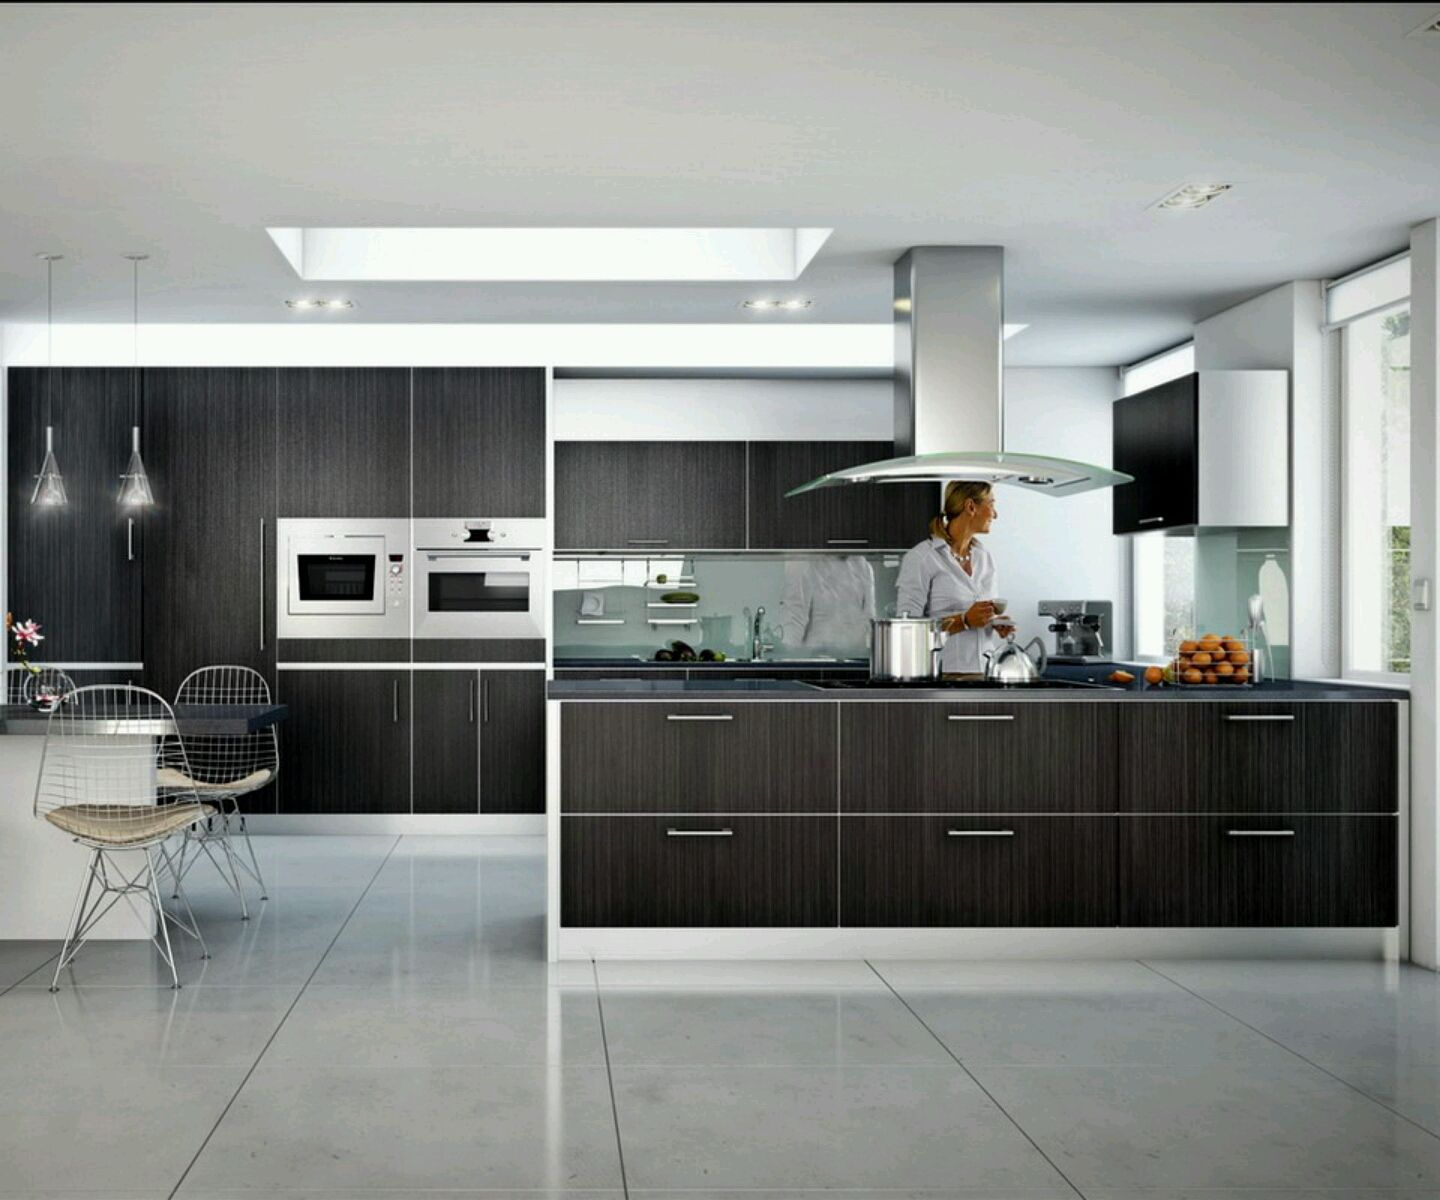 17 best images about home kitchen design on pinterest